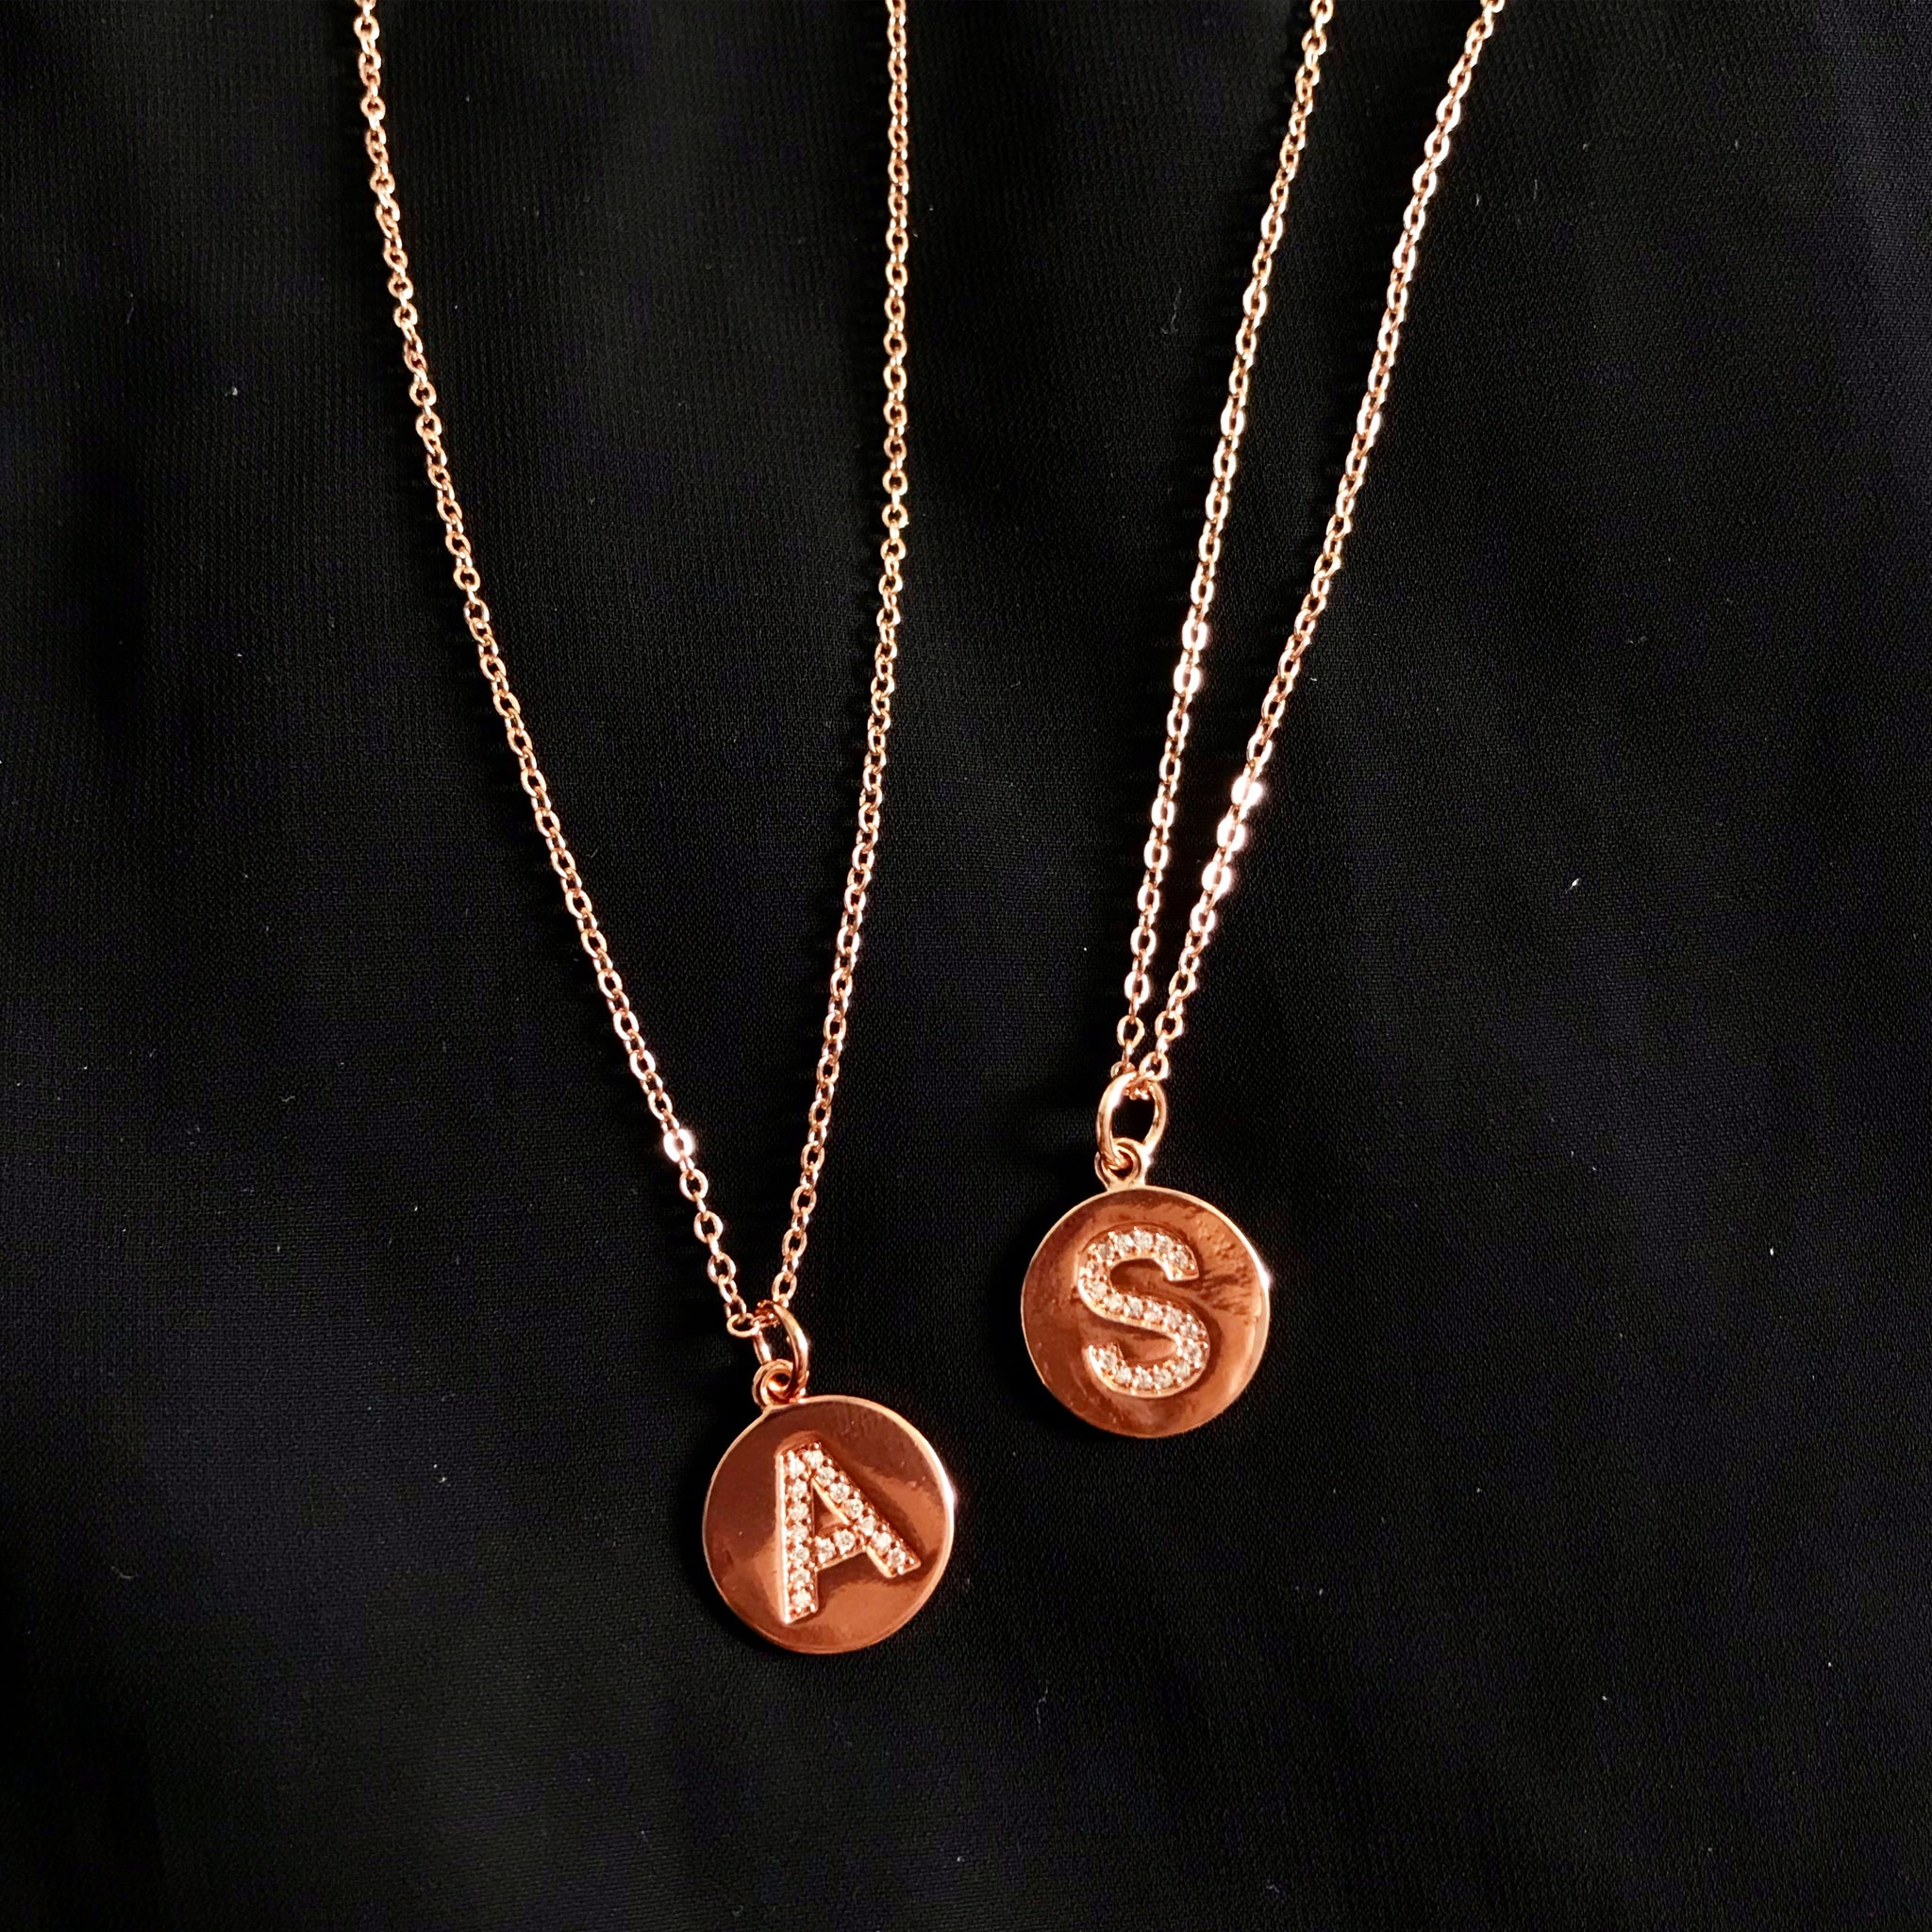 ROSE GOLD LETTER NECKLACE